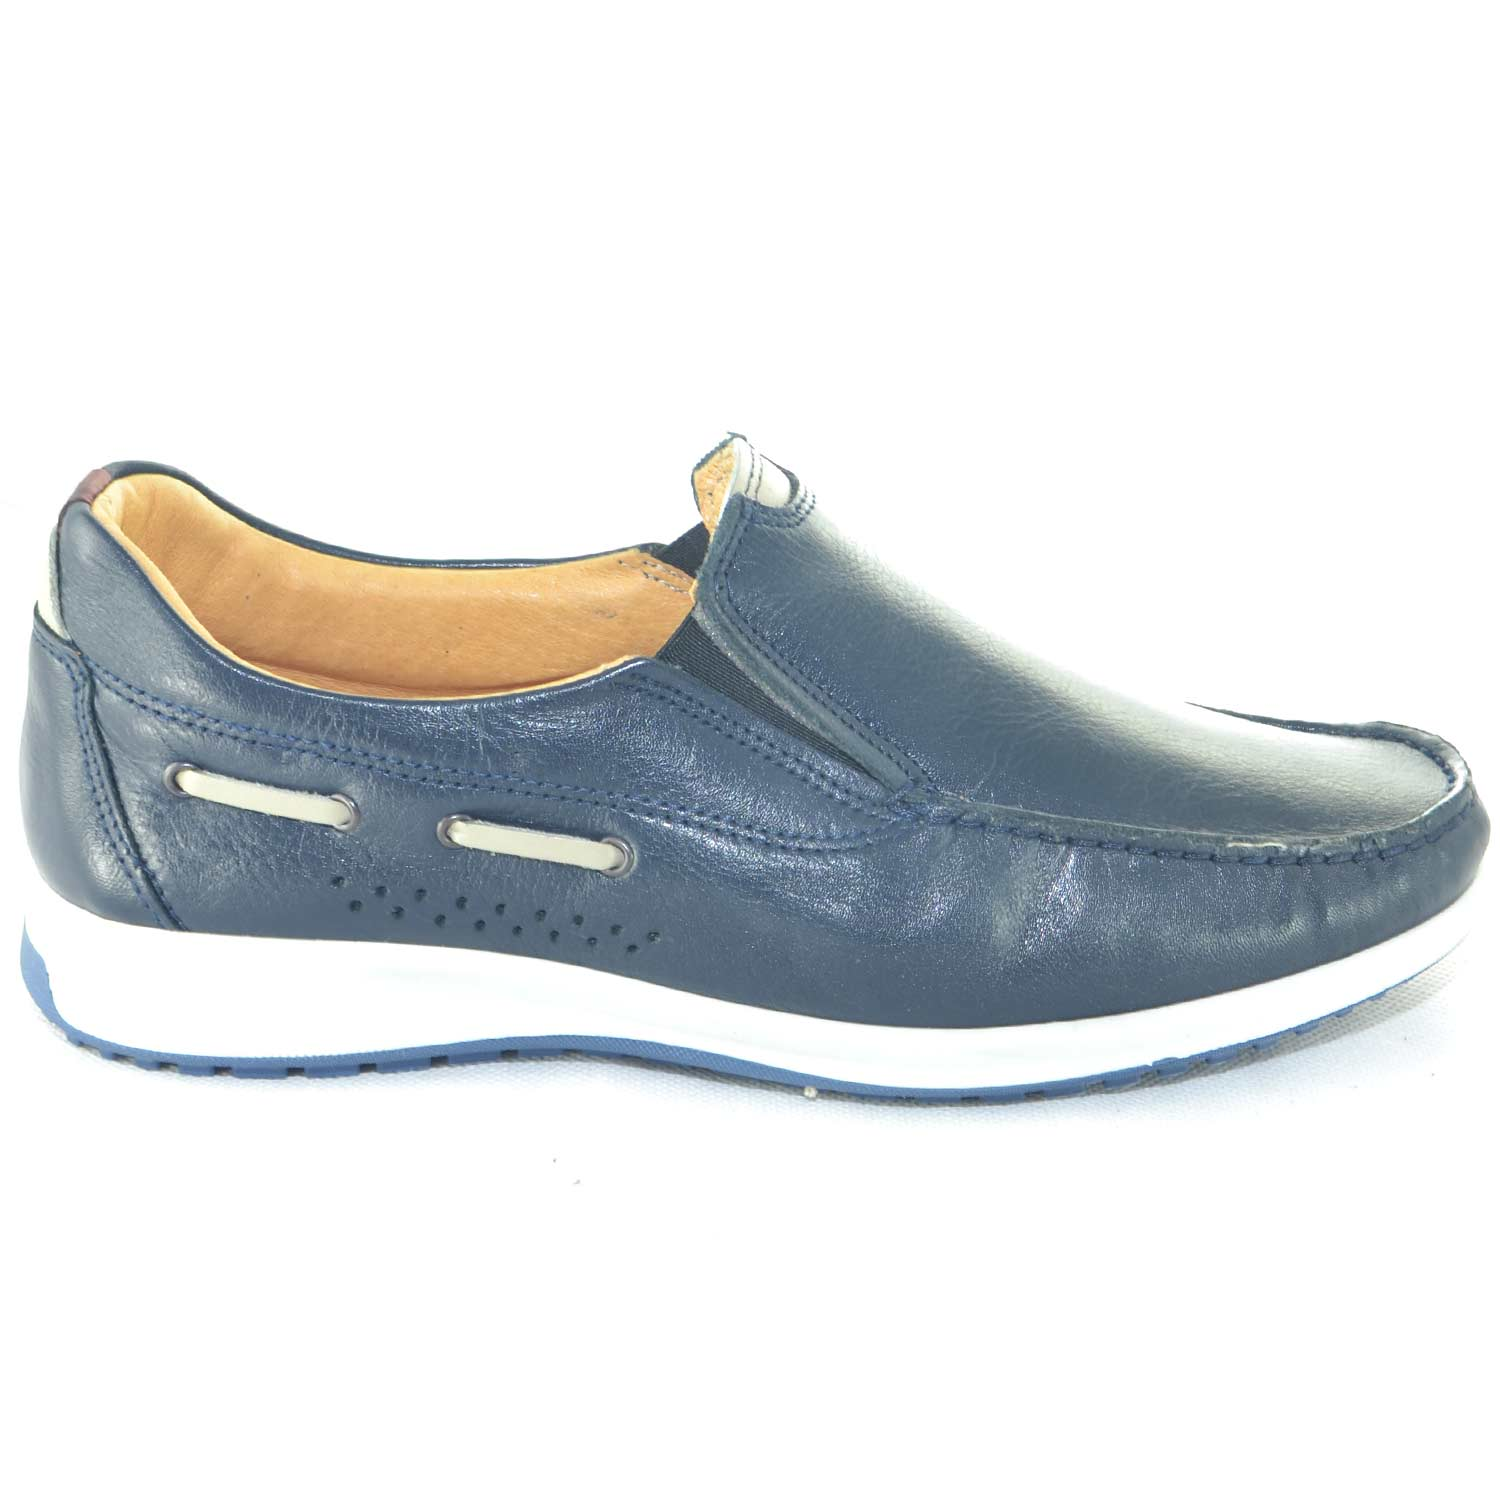 0e49bb7f5e1e7 Scarpe uomo mocassini interland comfort man casual made in italy vera pelle  blu